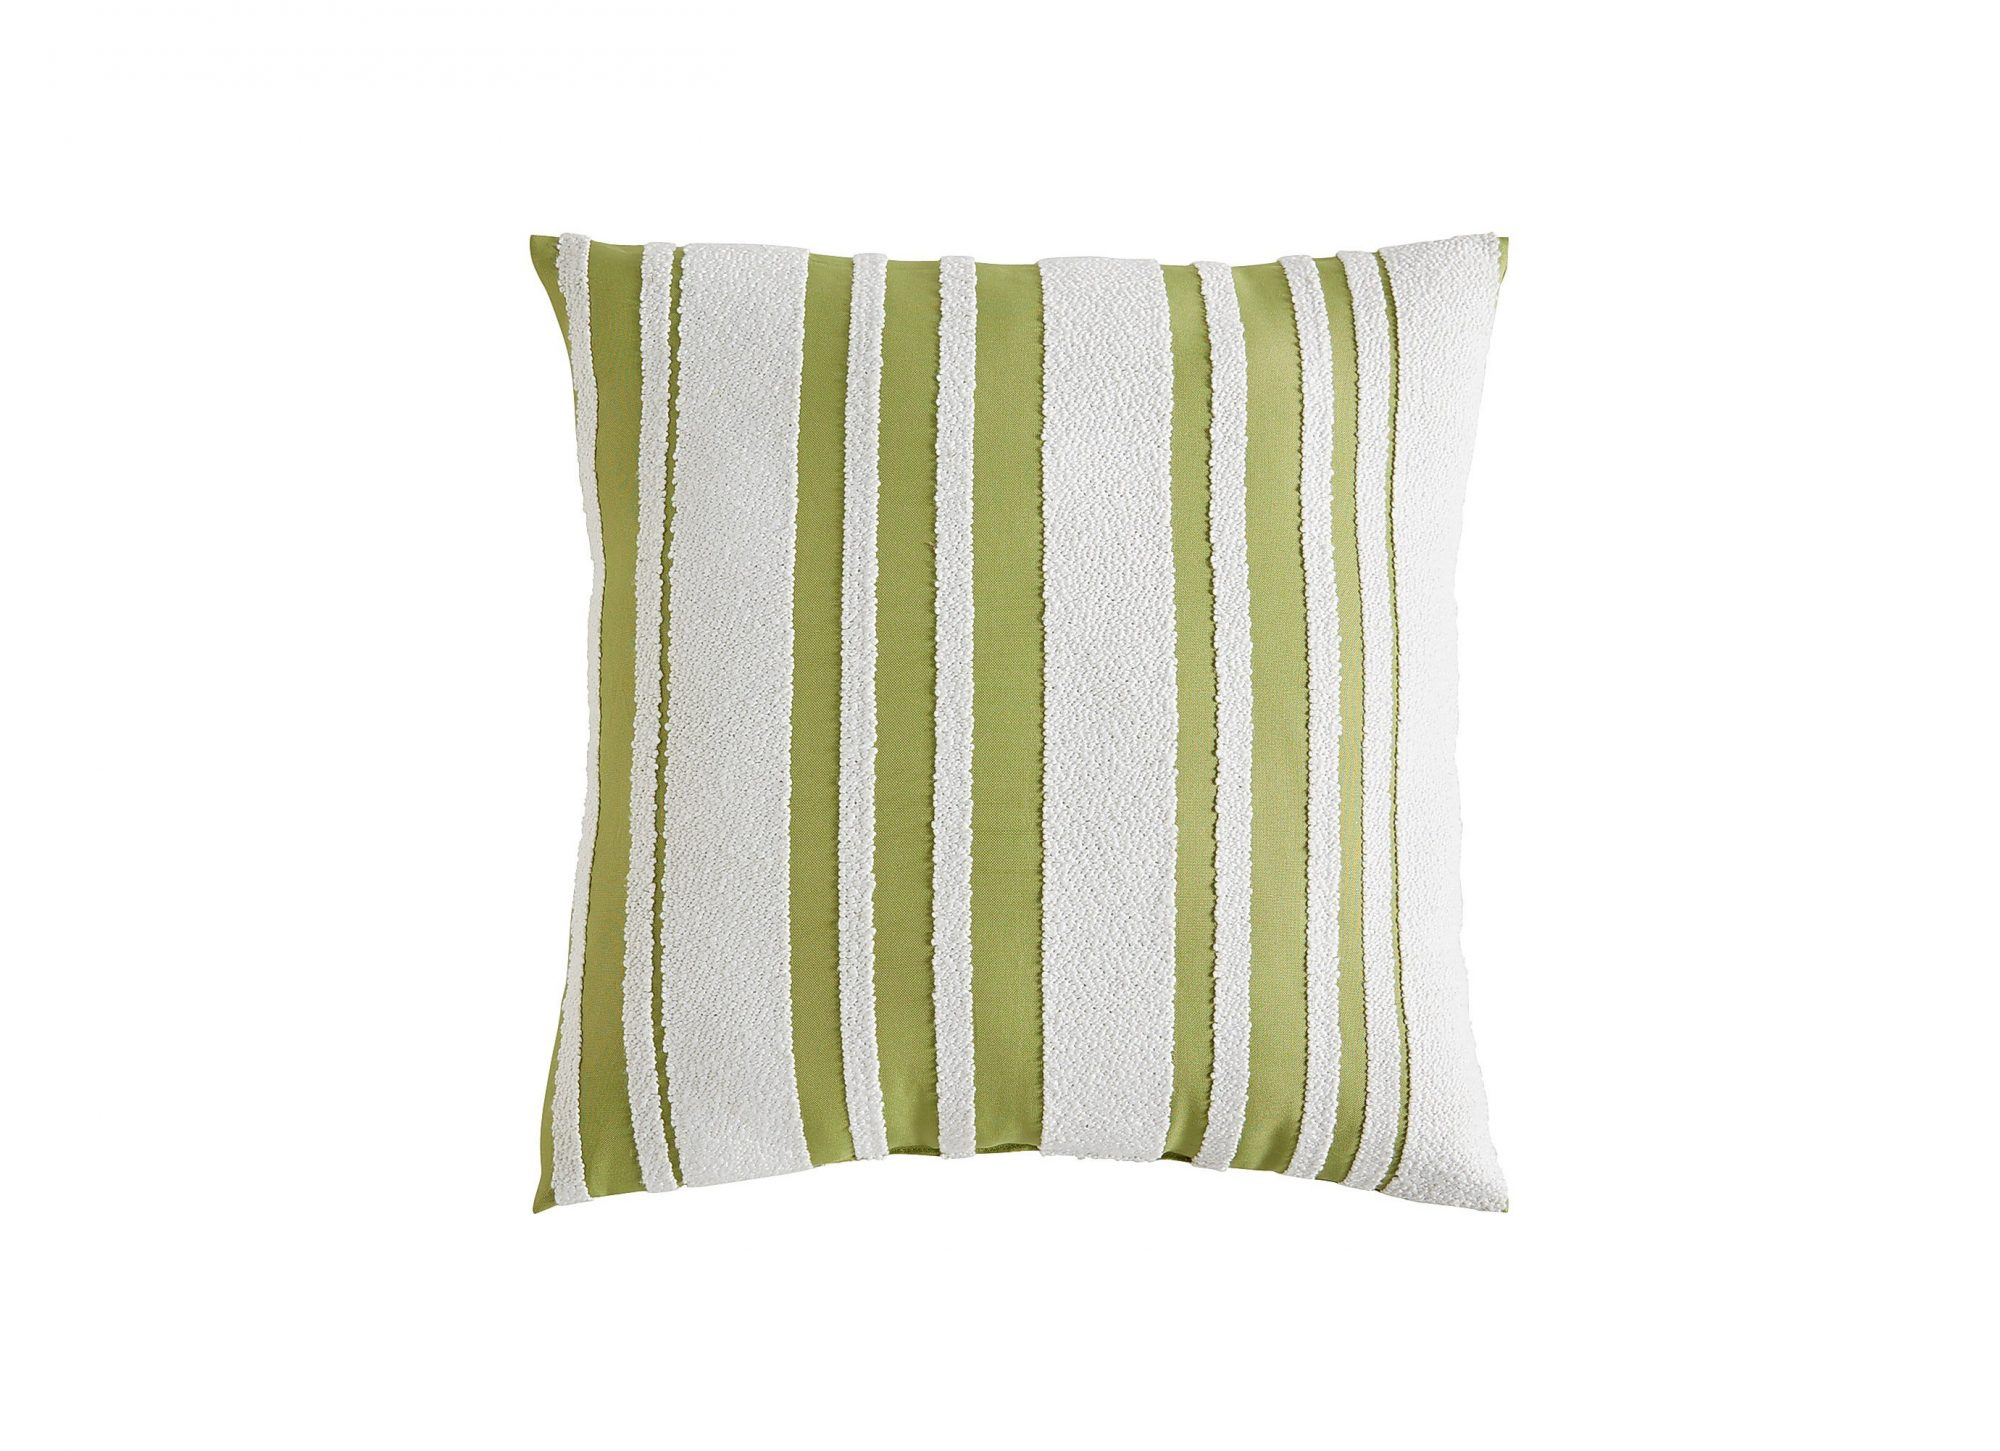 Farmhouse Fern Striped Pillow